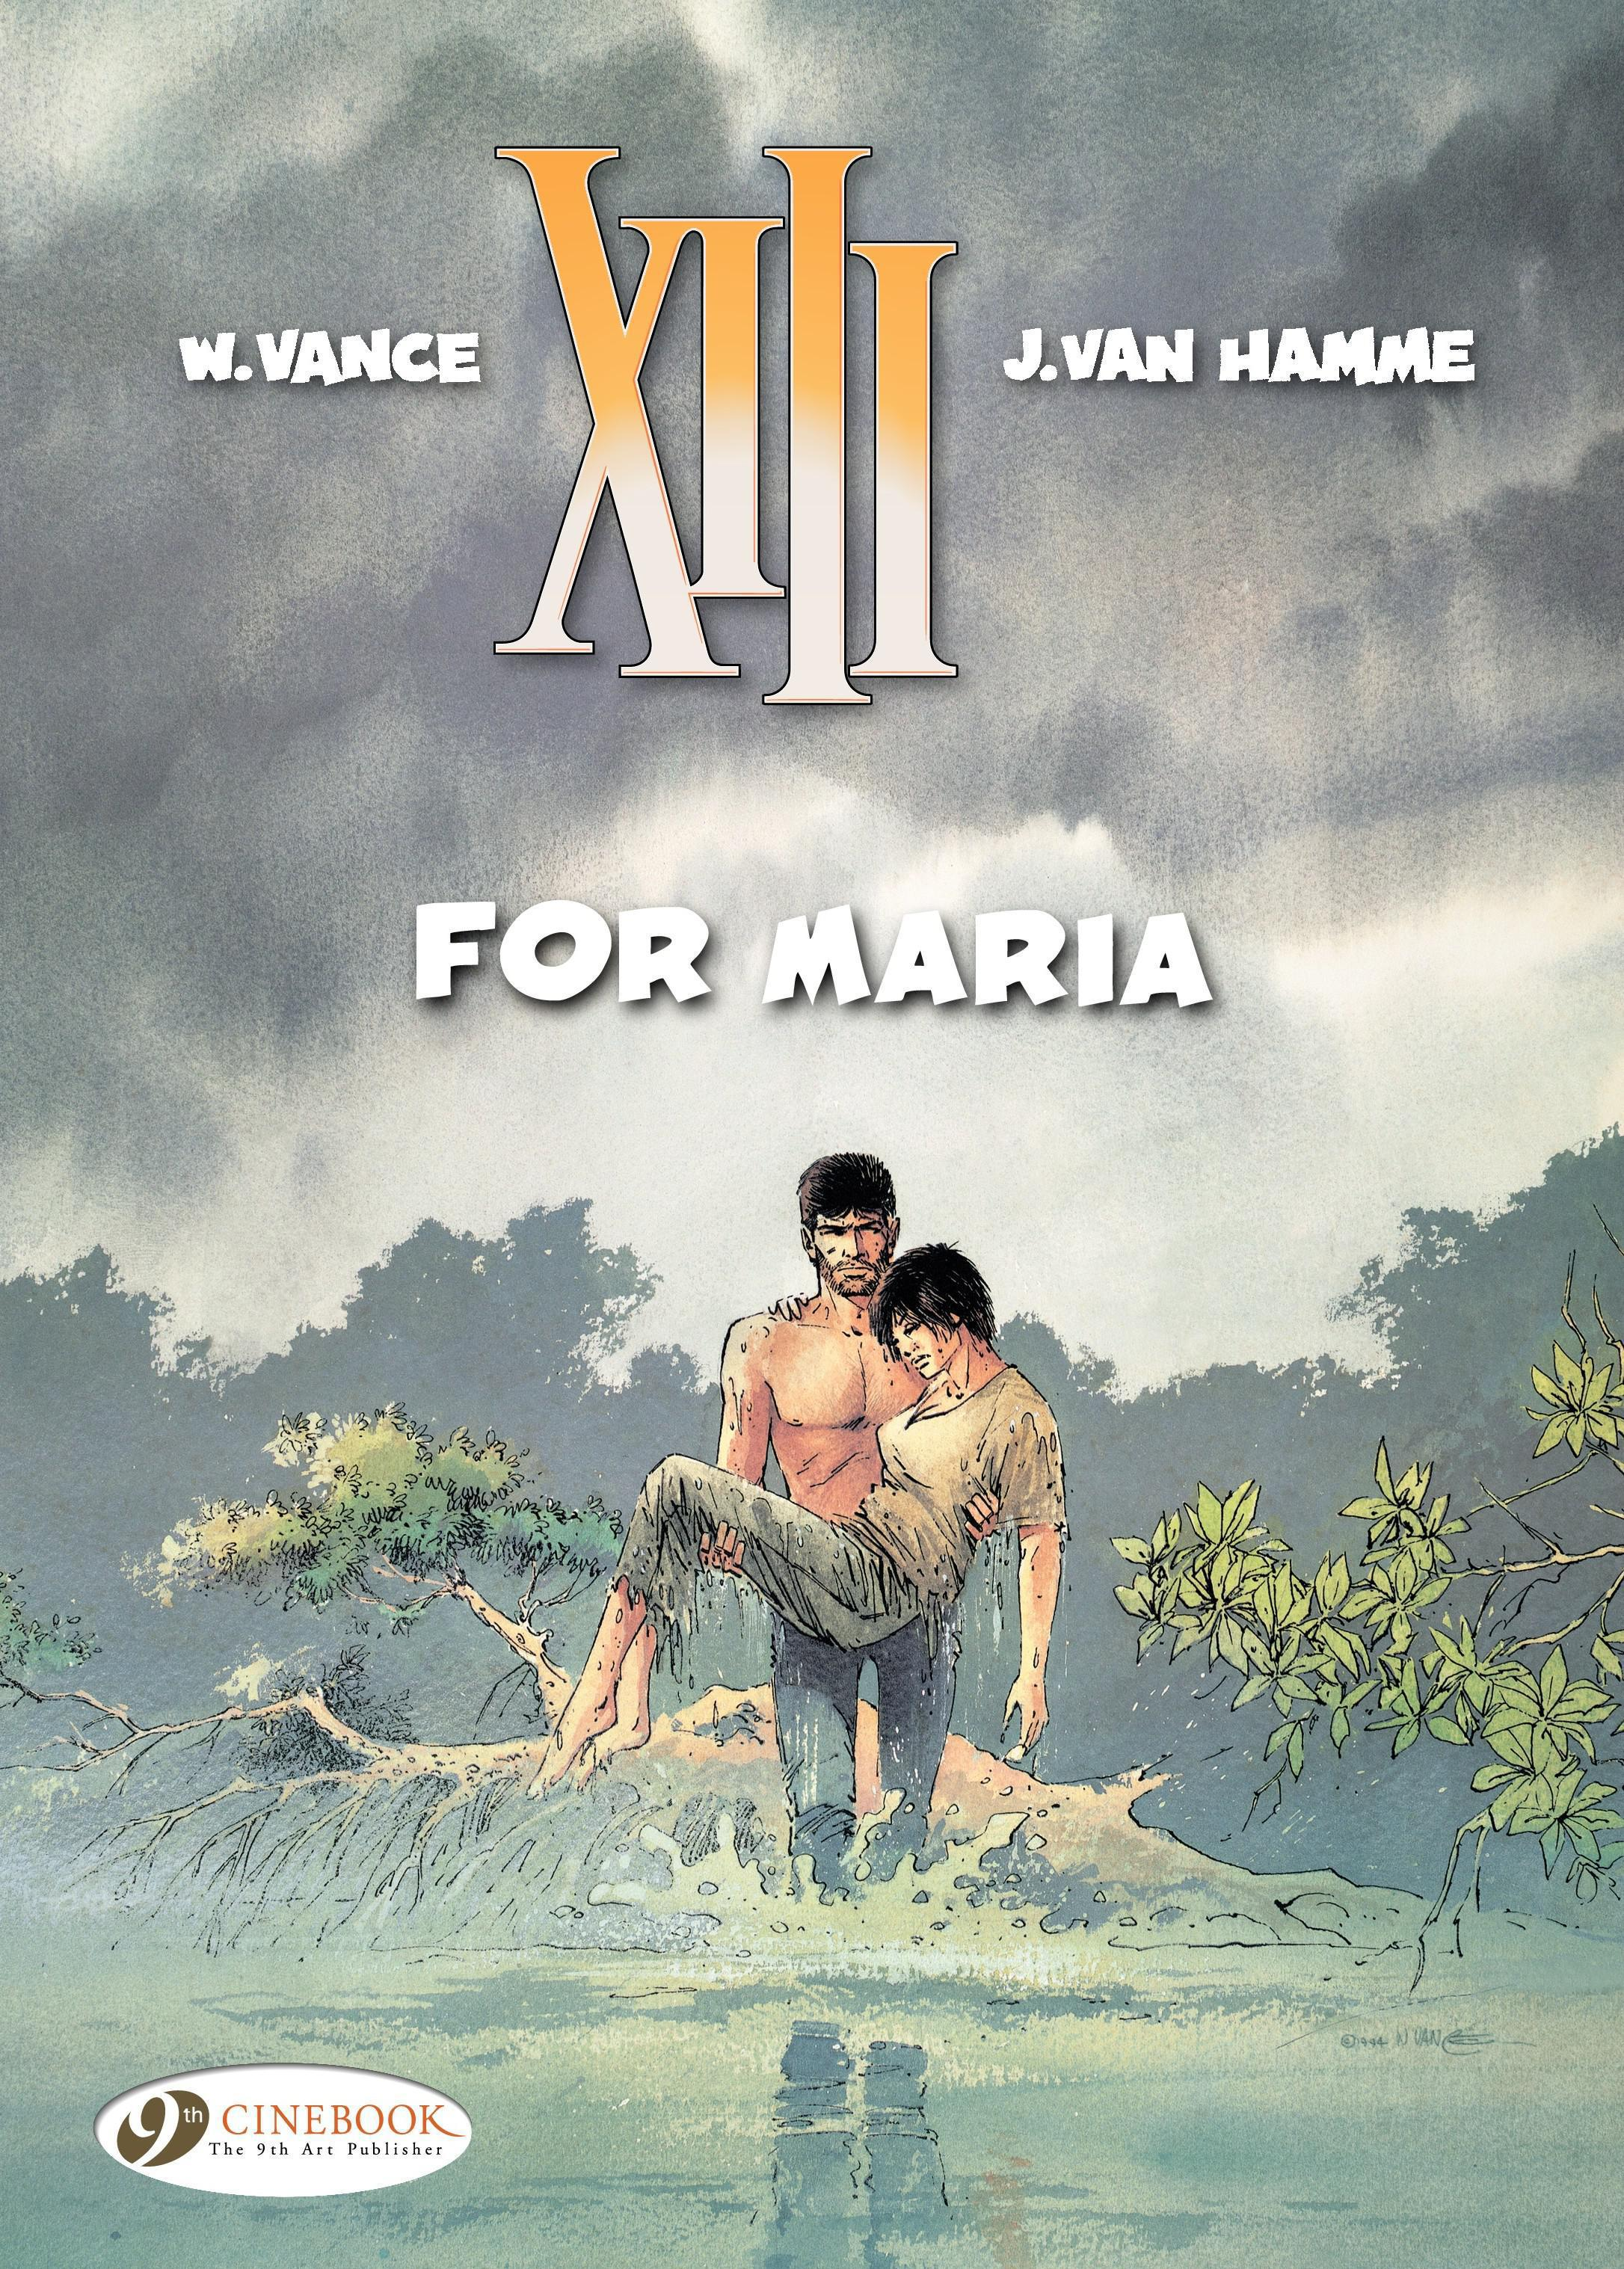 XIII - Volume 9 - For Maria, William Vance